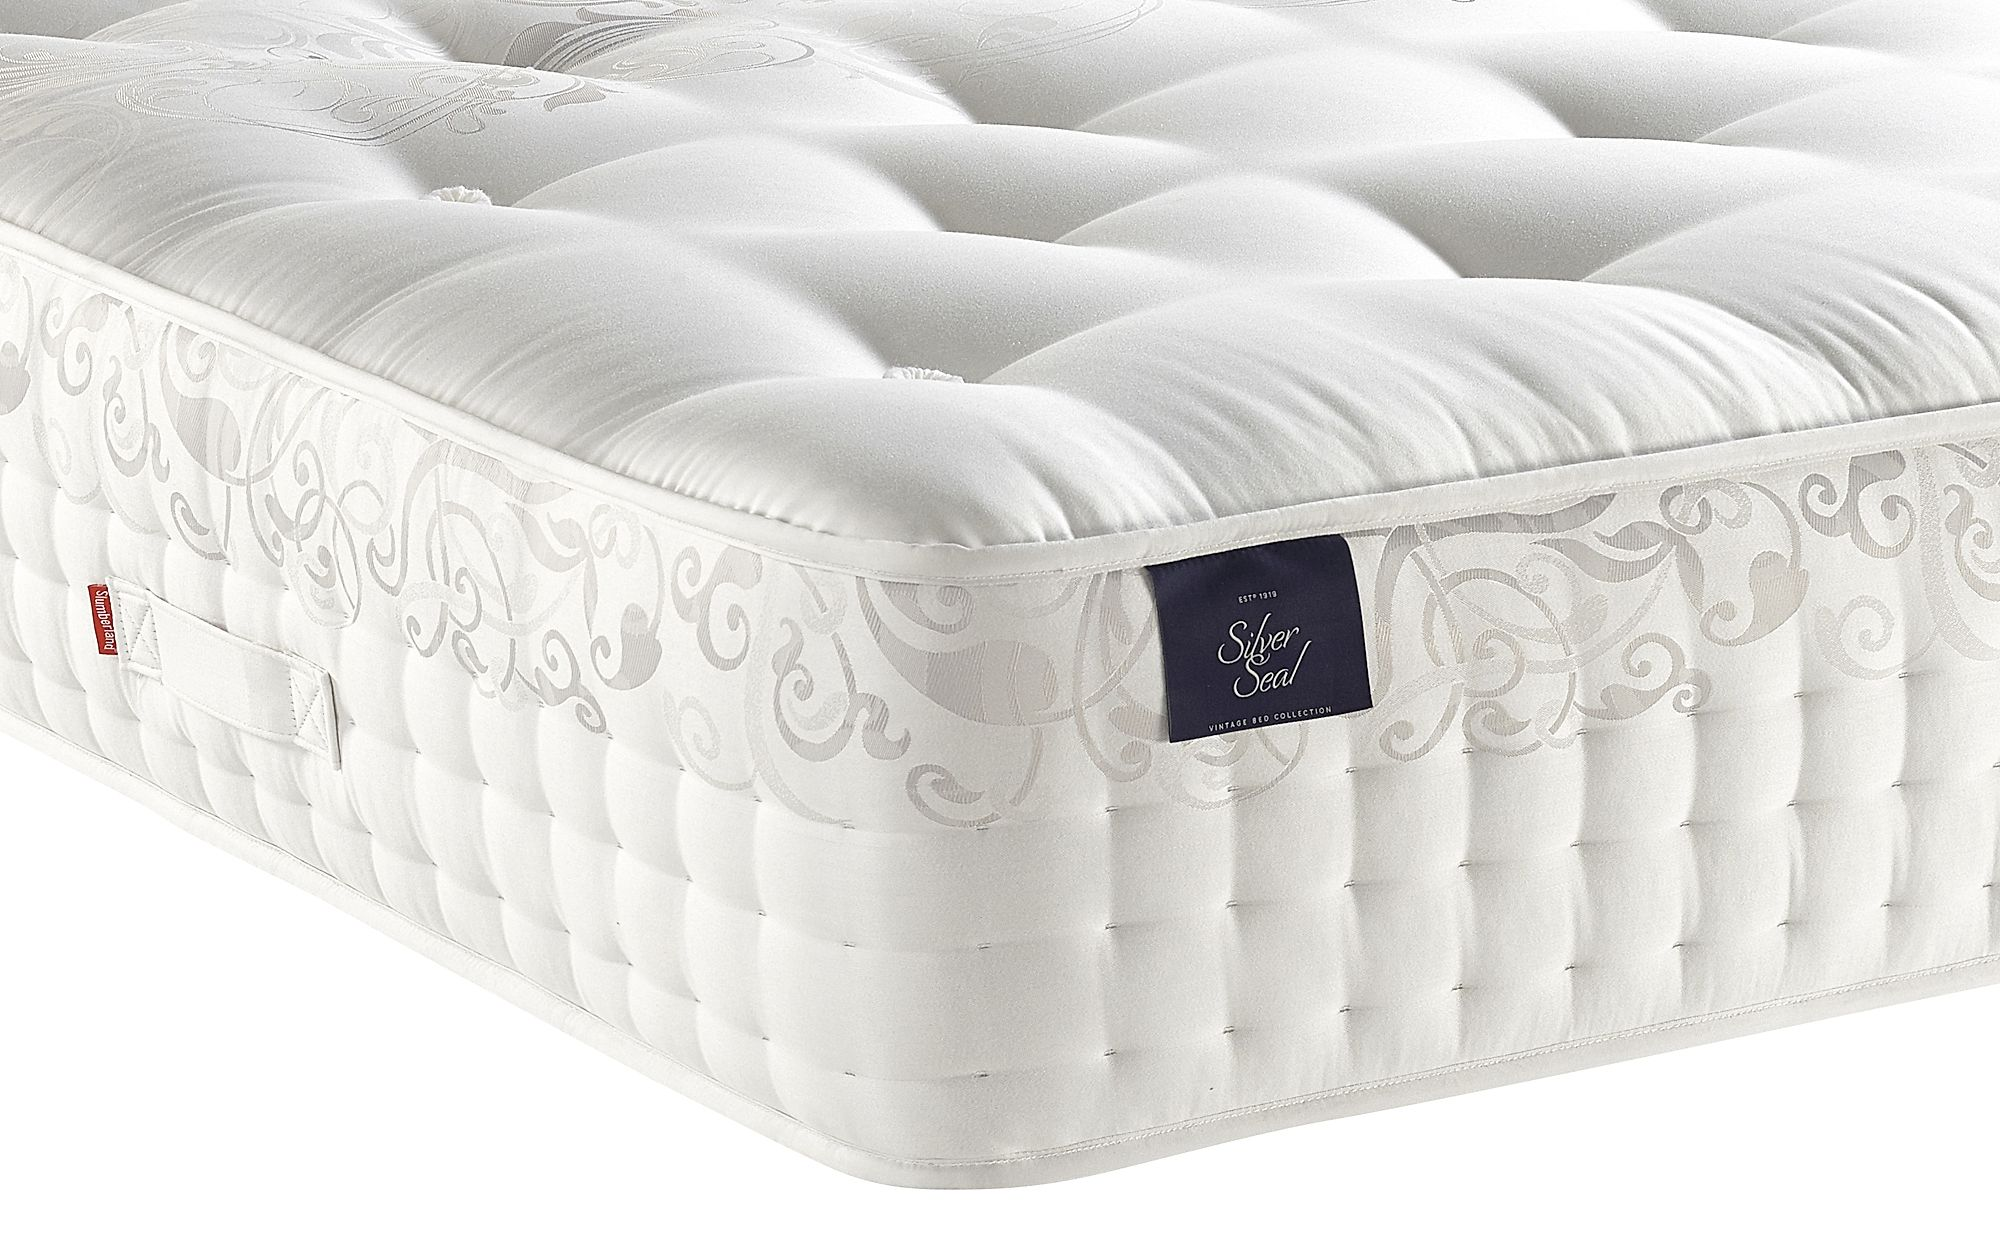 Slumberland Silver Seal 2000 Mattress Super King Size Only Furniture Choice